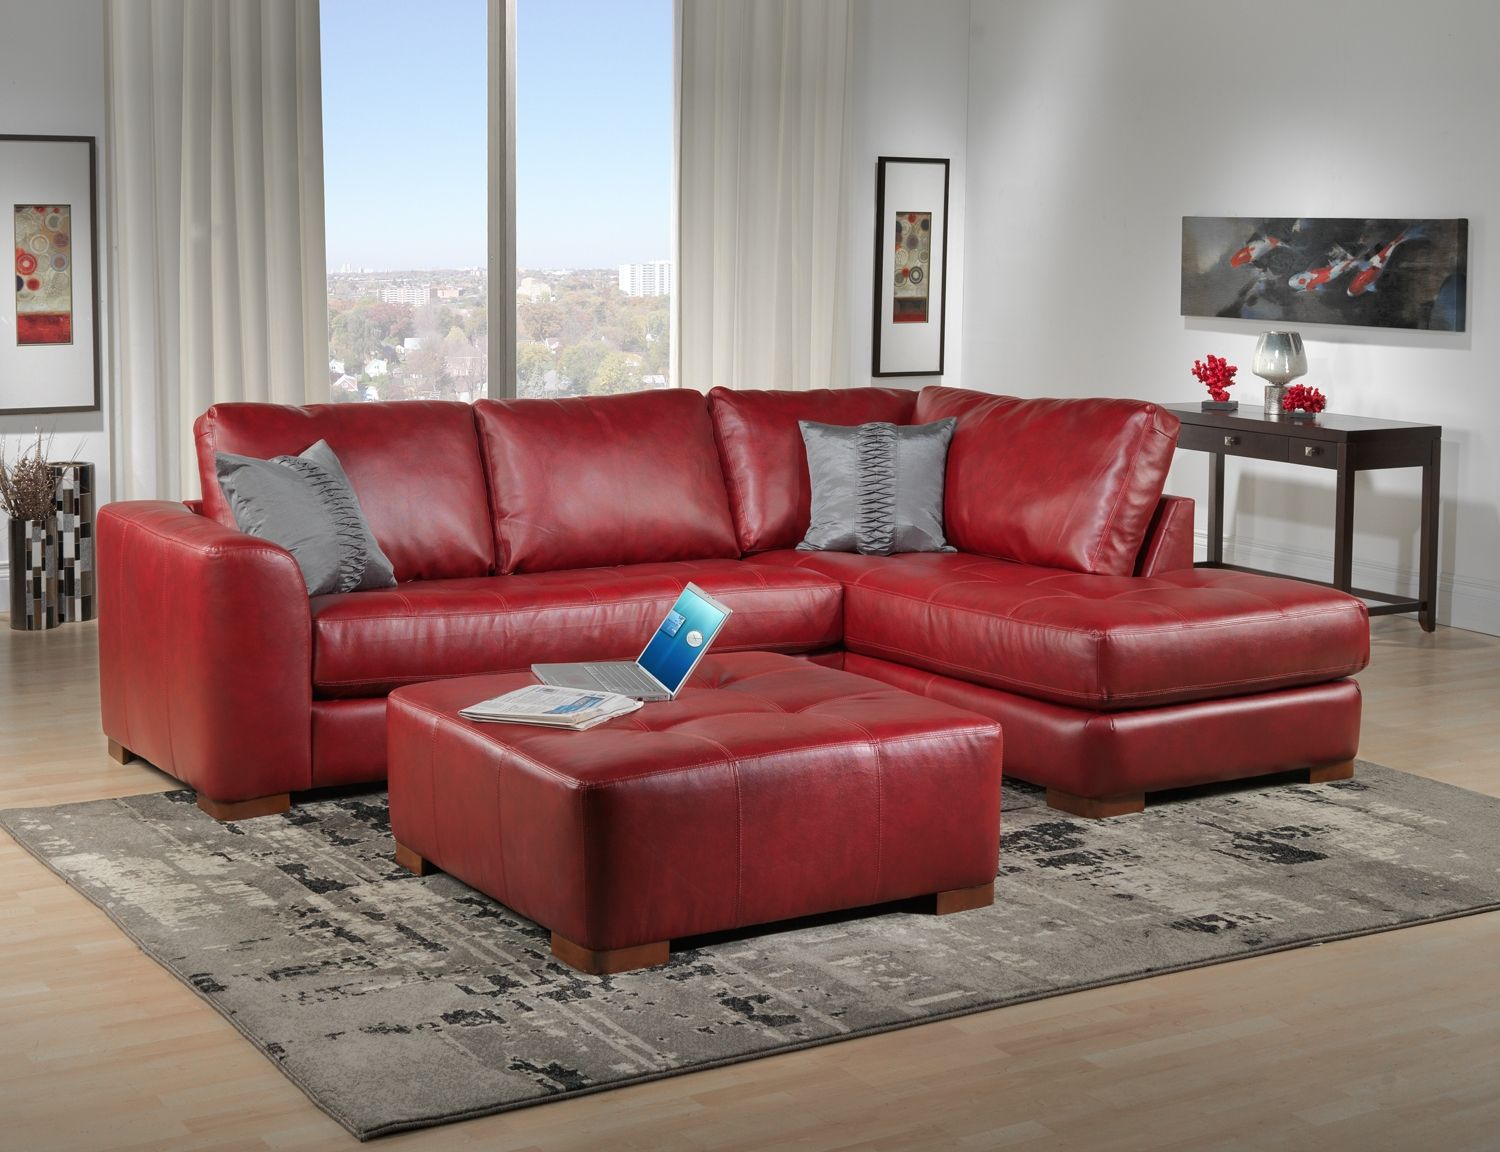 I want a red leather couch Humble Abode Pinterest Red